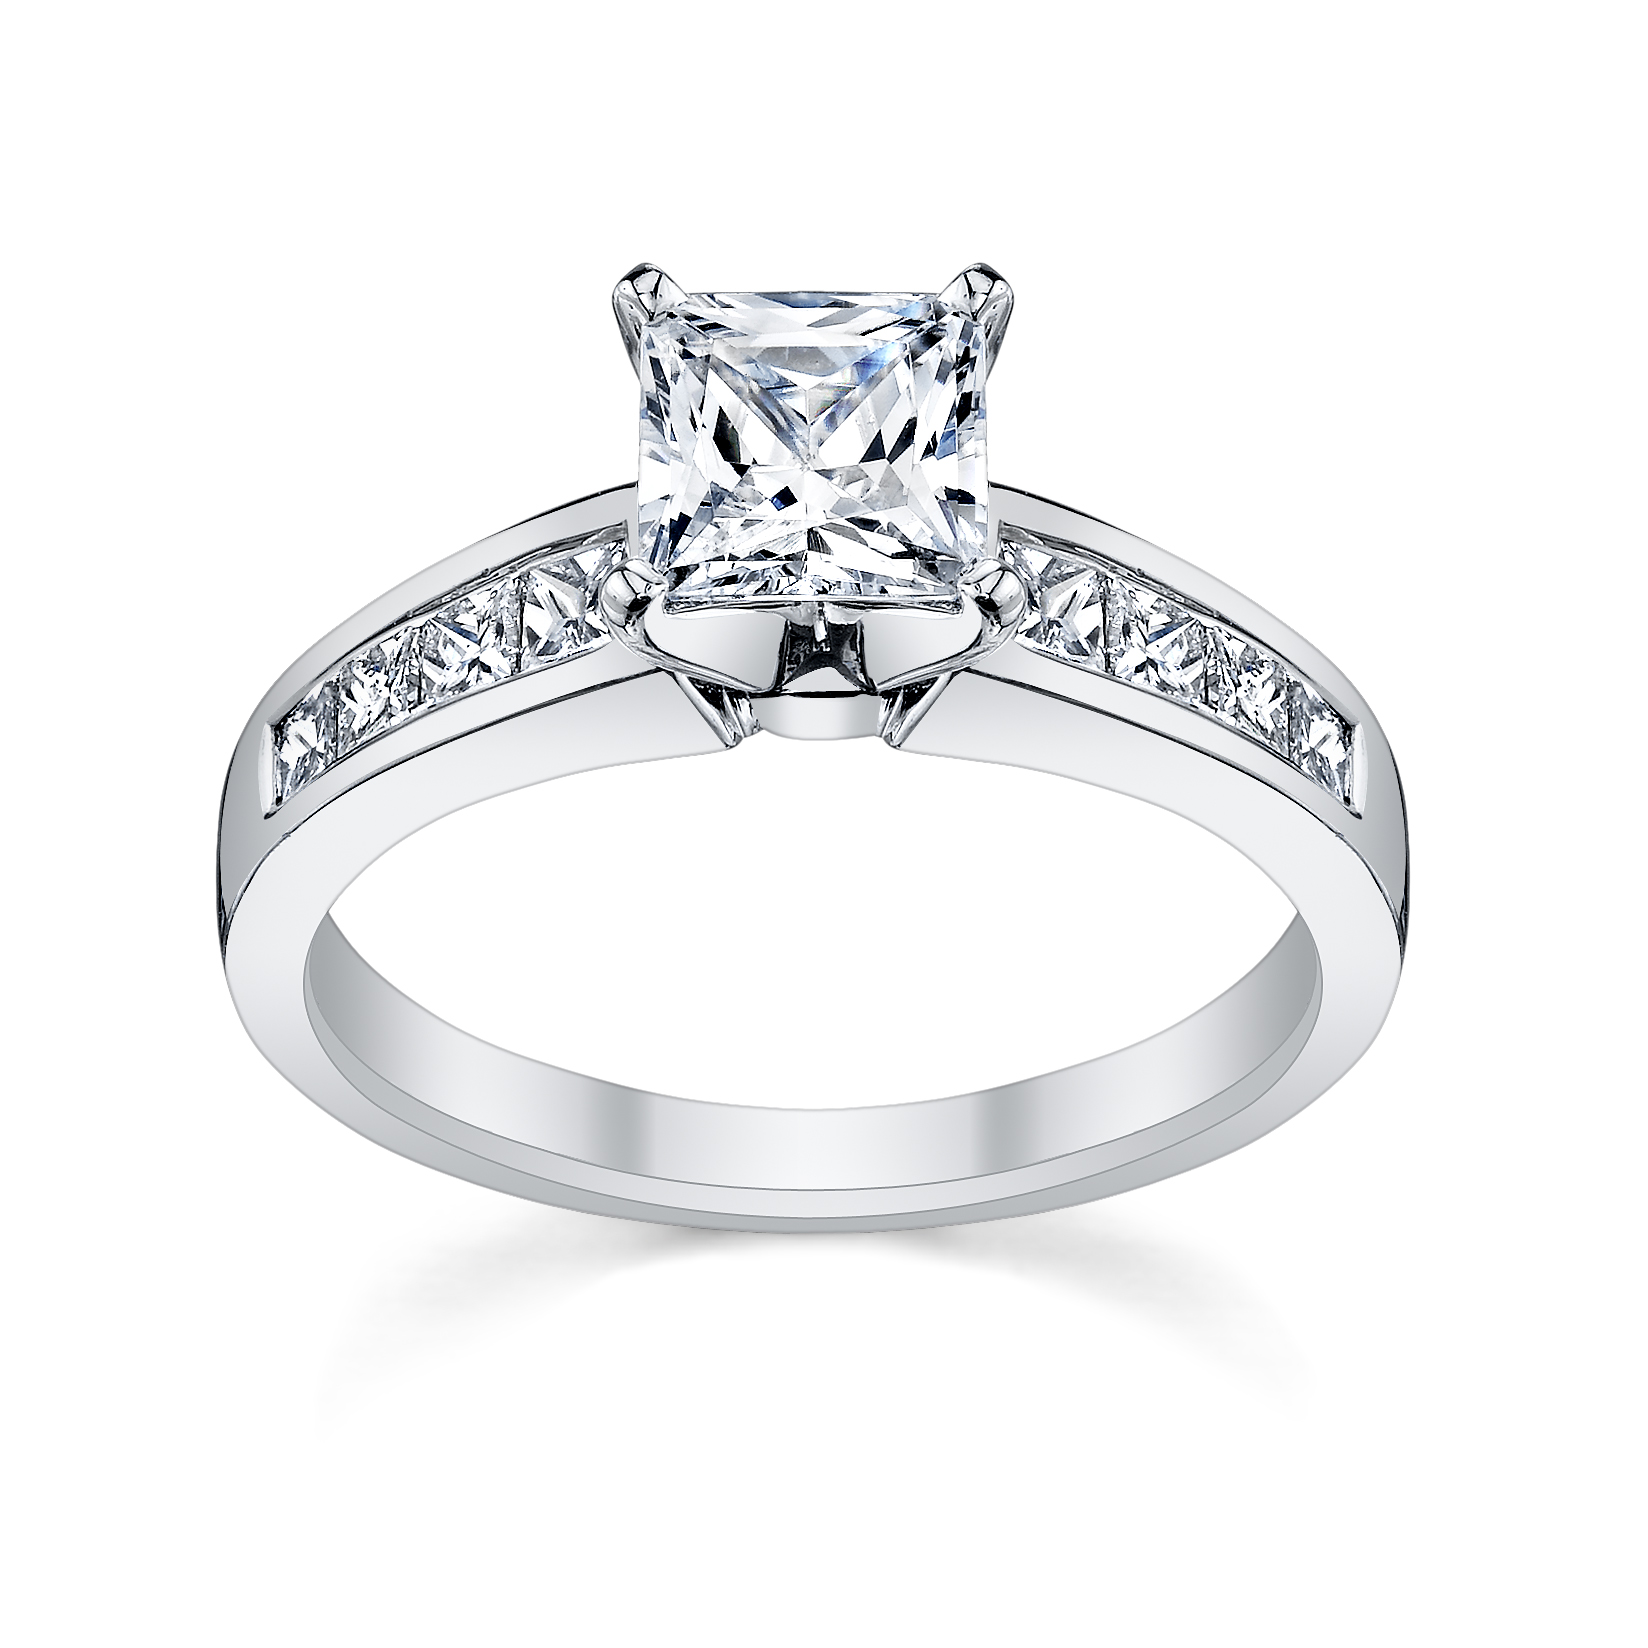 6 princess cut engagement rings she ll robbins